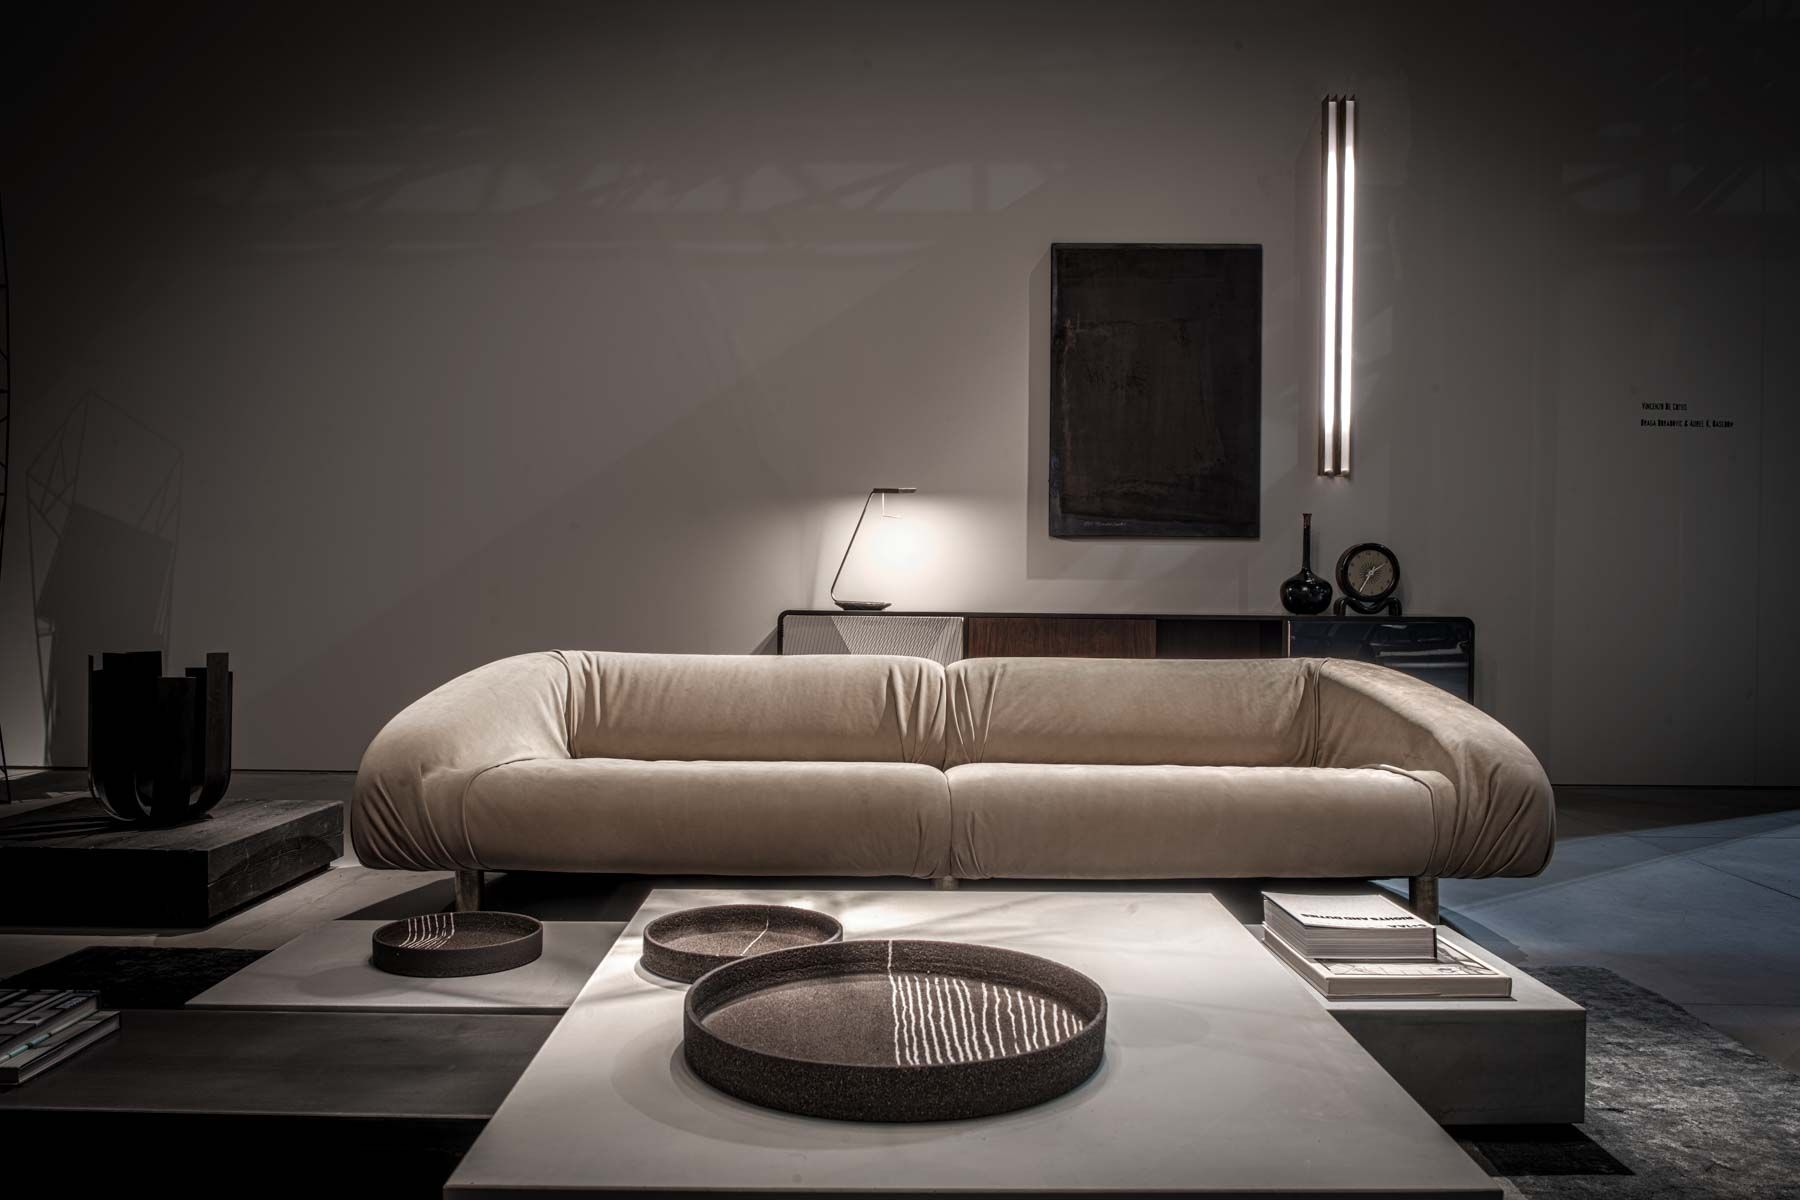 Materiality And Minimalist Aesthetic. Baxter At ISaloni Amazing Design